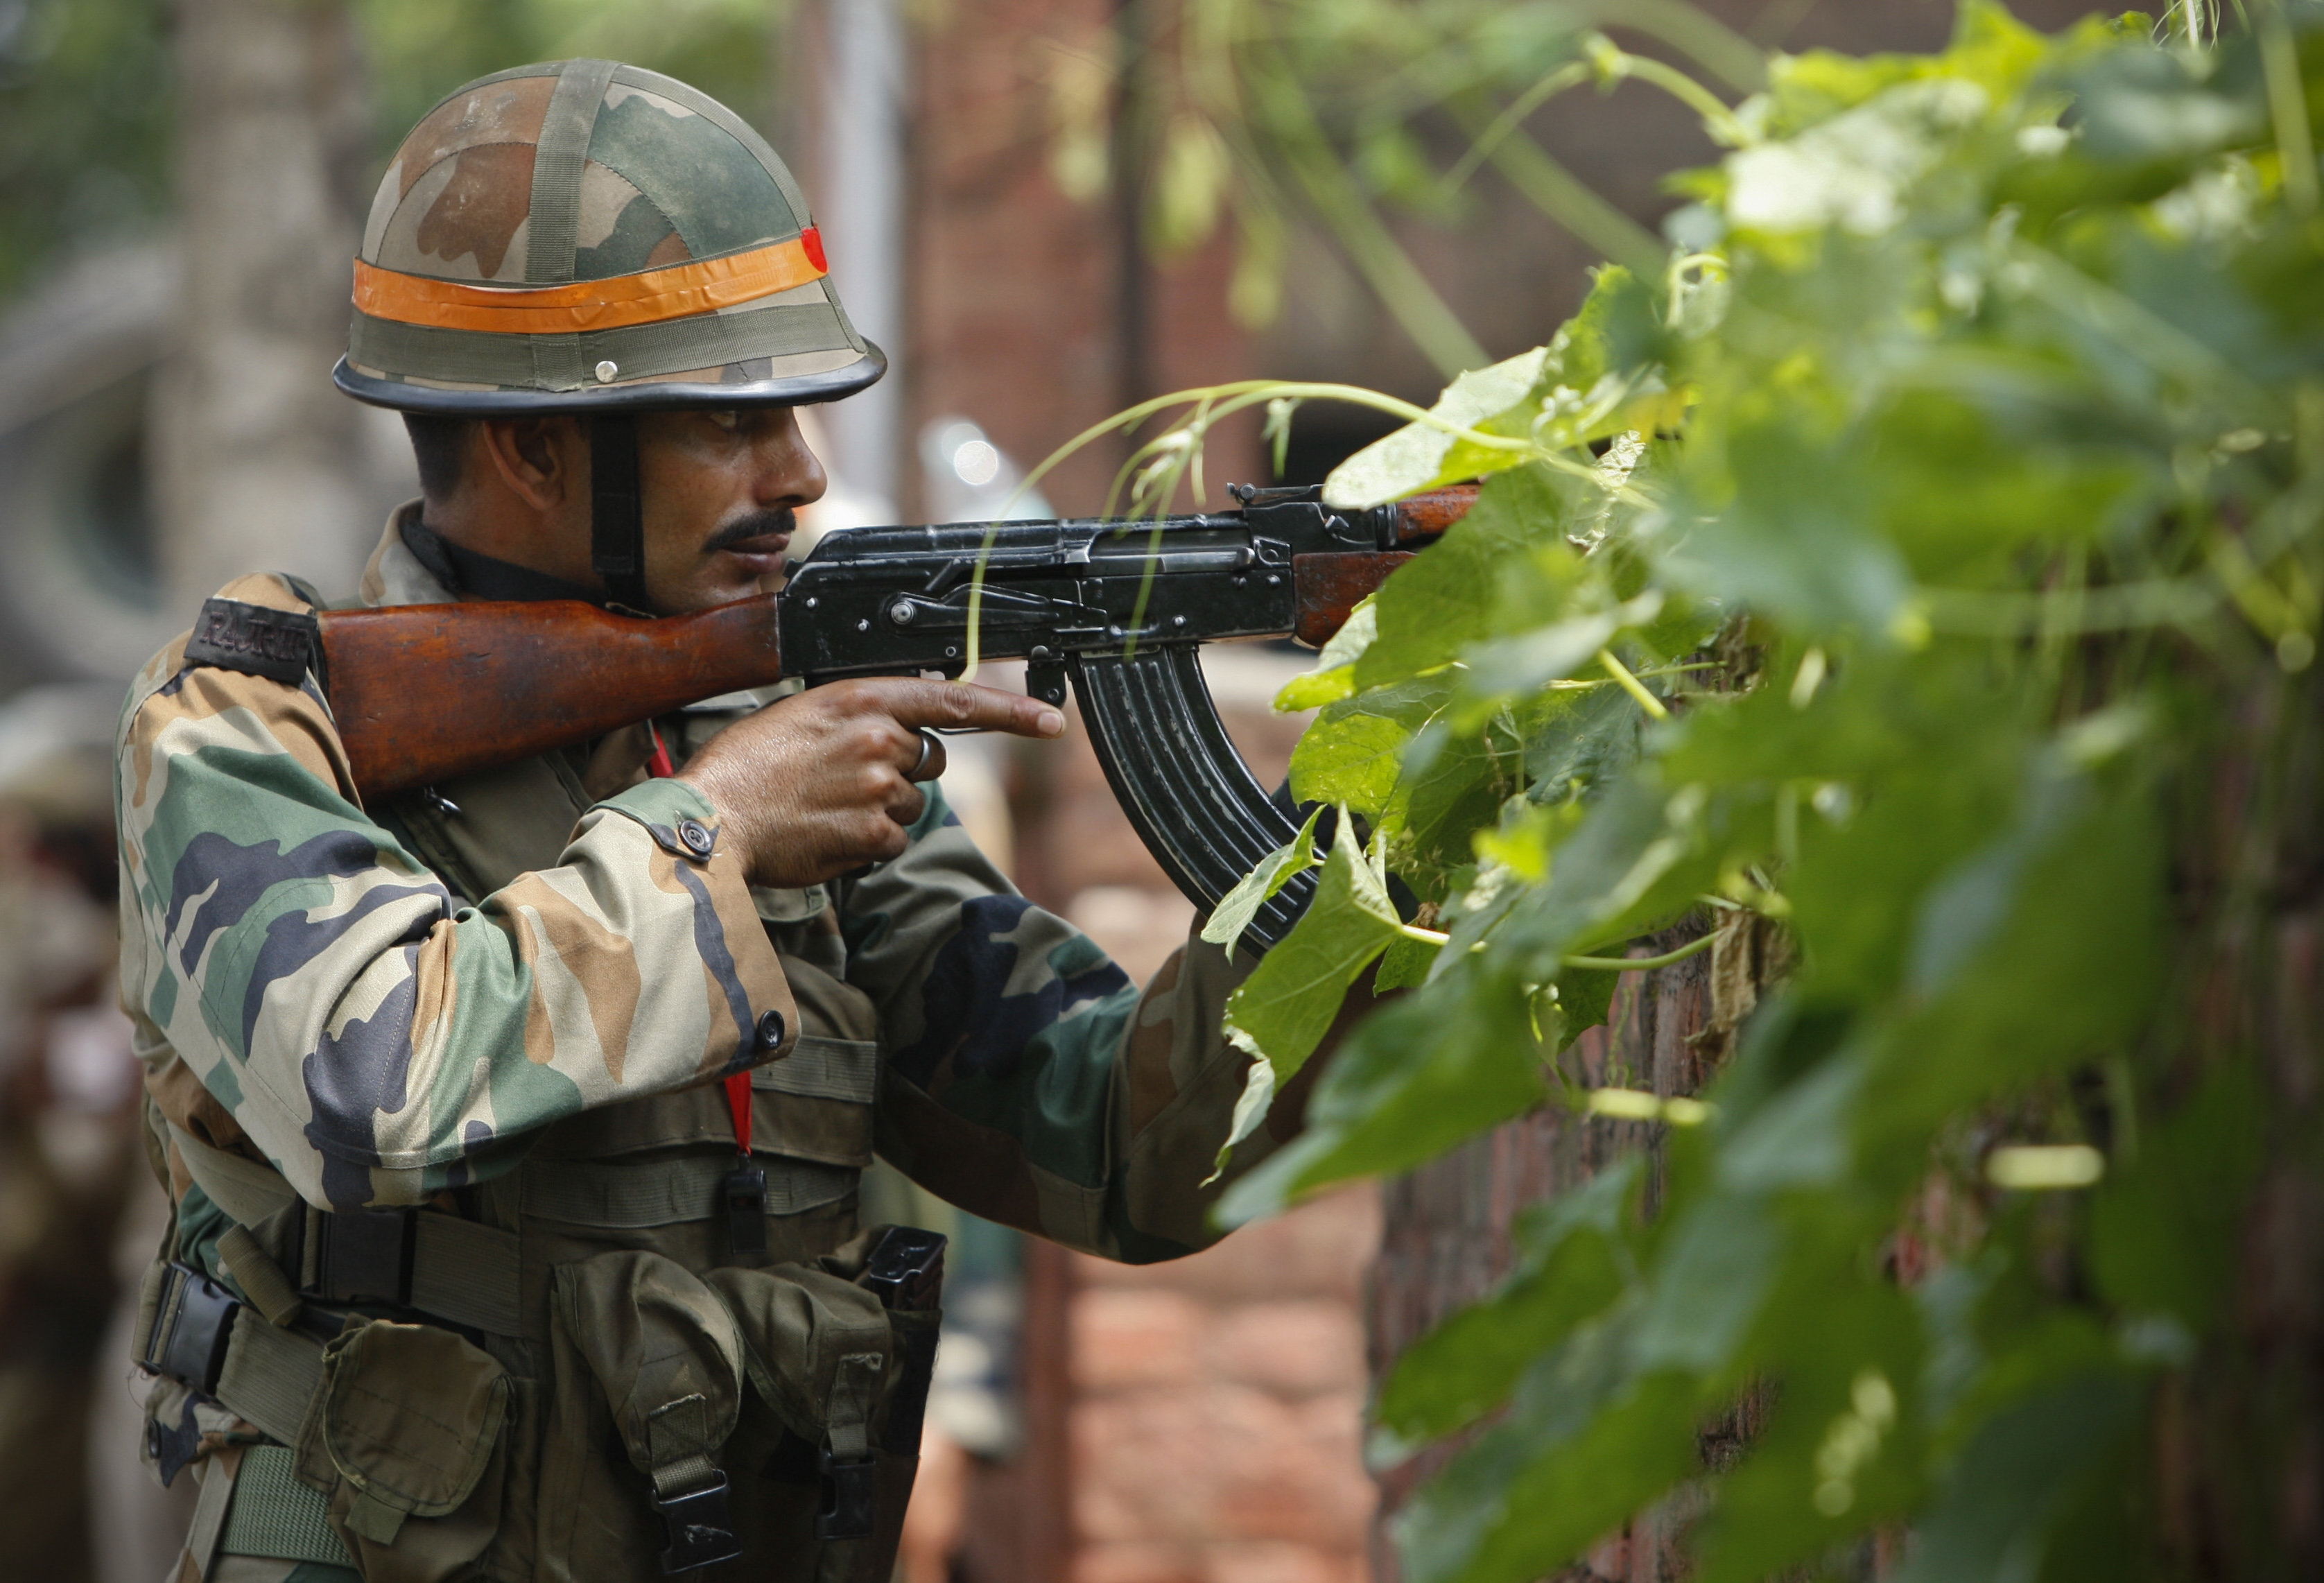 An Indian army soldier holds an AK-47 assault rifle during a fight in the town of Dinanagar, in the northern state of Punjab, India, Monday, July 27, 2015. Indian army commandos joined police in fighting suspected militants who fired at a bus station and stormed into police barracks on the outskirts of a northern town bordering Pakistan early Monday. Rebels have been fighting for an independent Kashmir or its merger with Pakistan since 1989.  Photo: AP